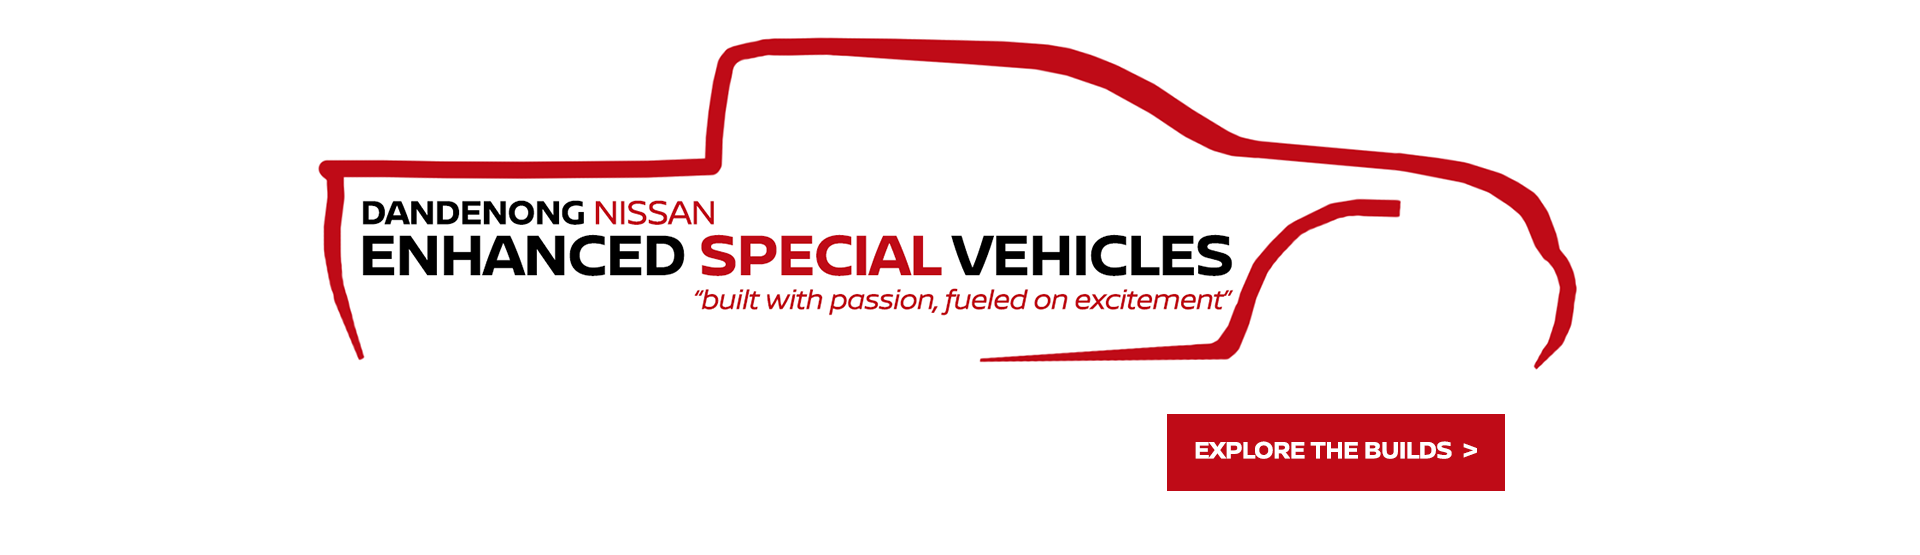 Enhanced Special Vehicles